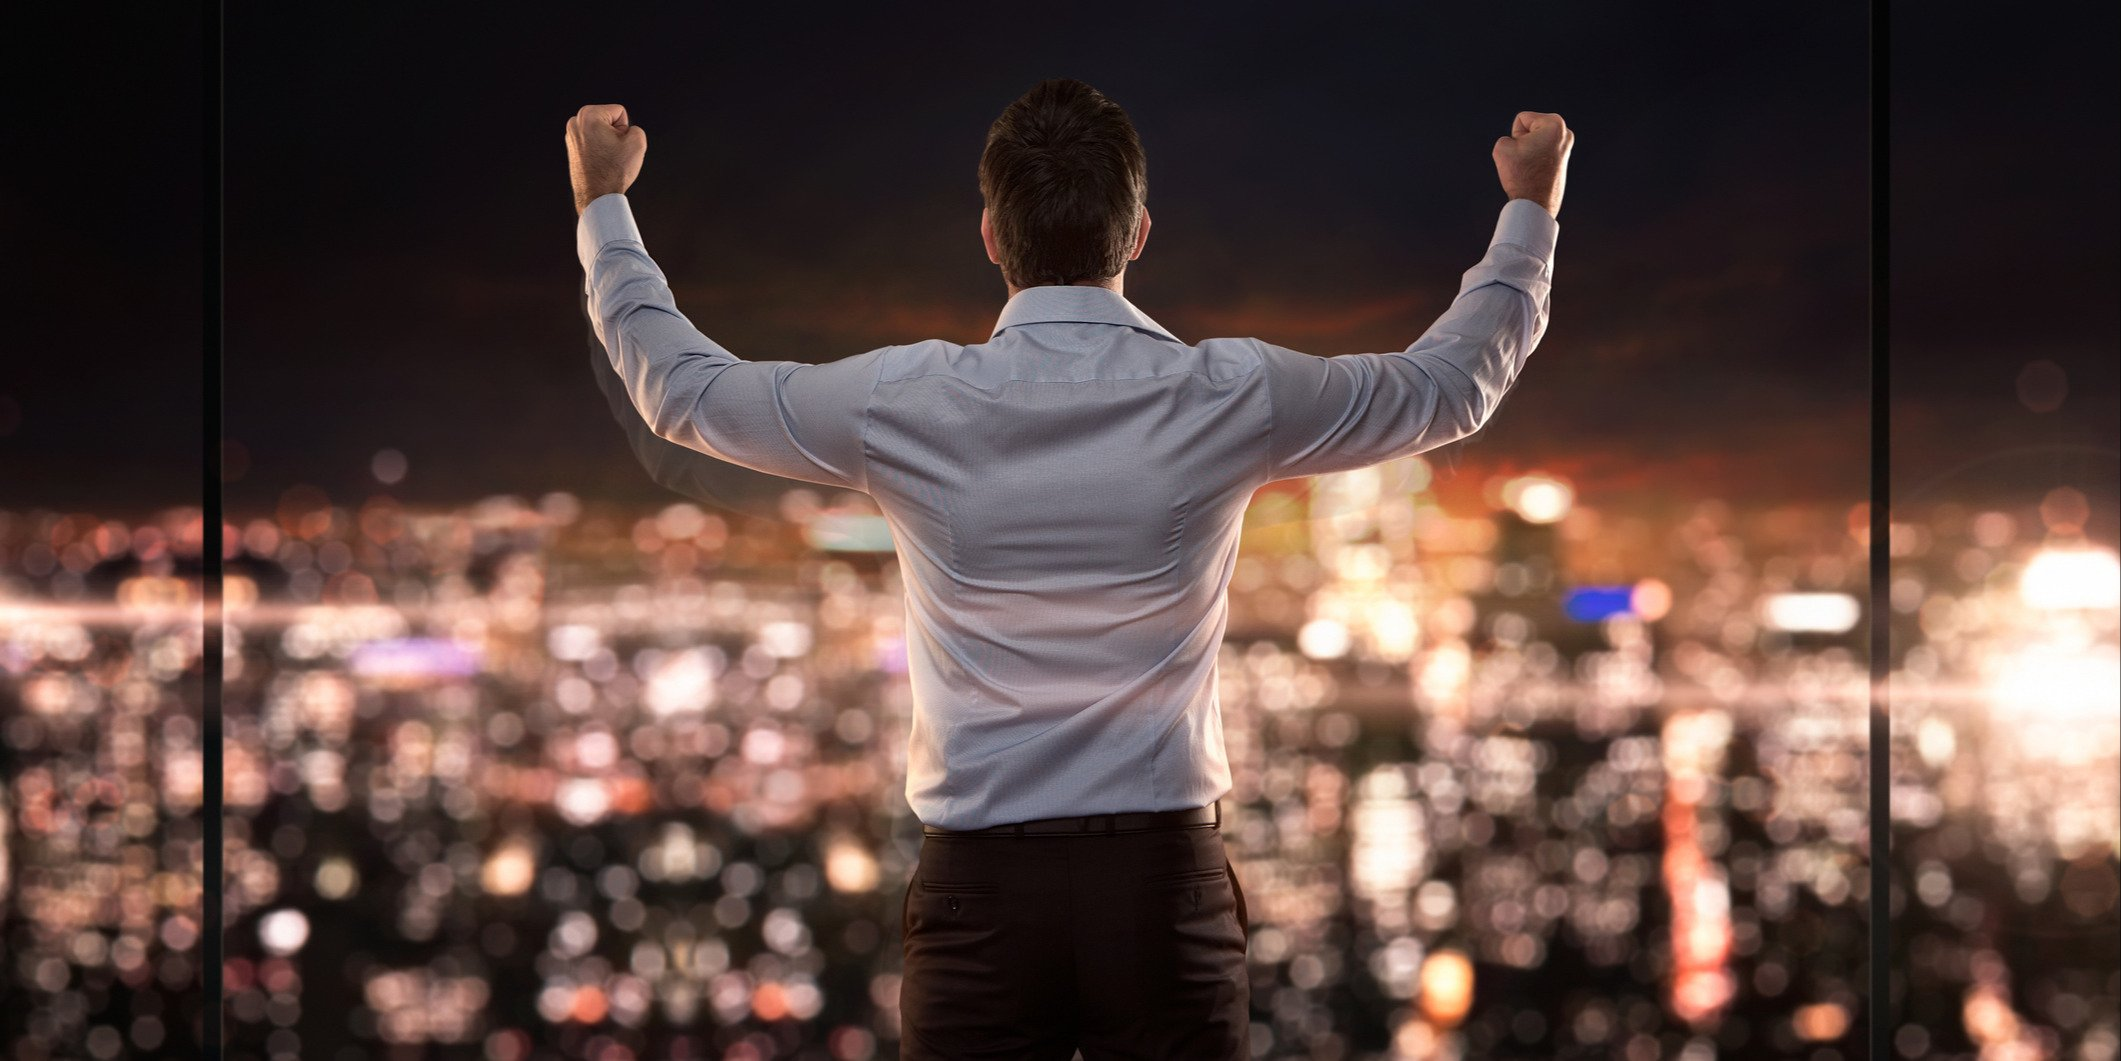 20 Motivational Videos for Your Sales Team